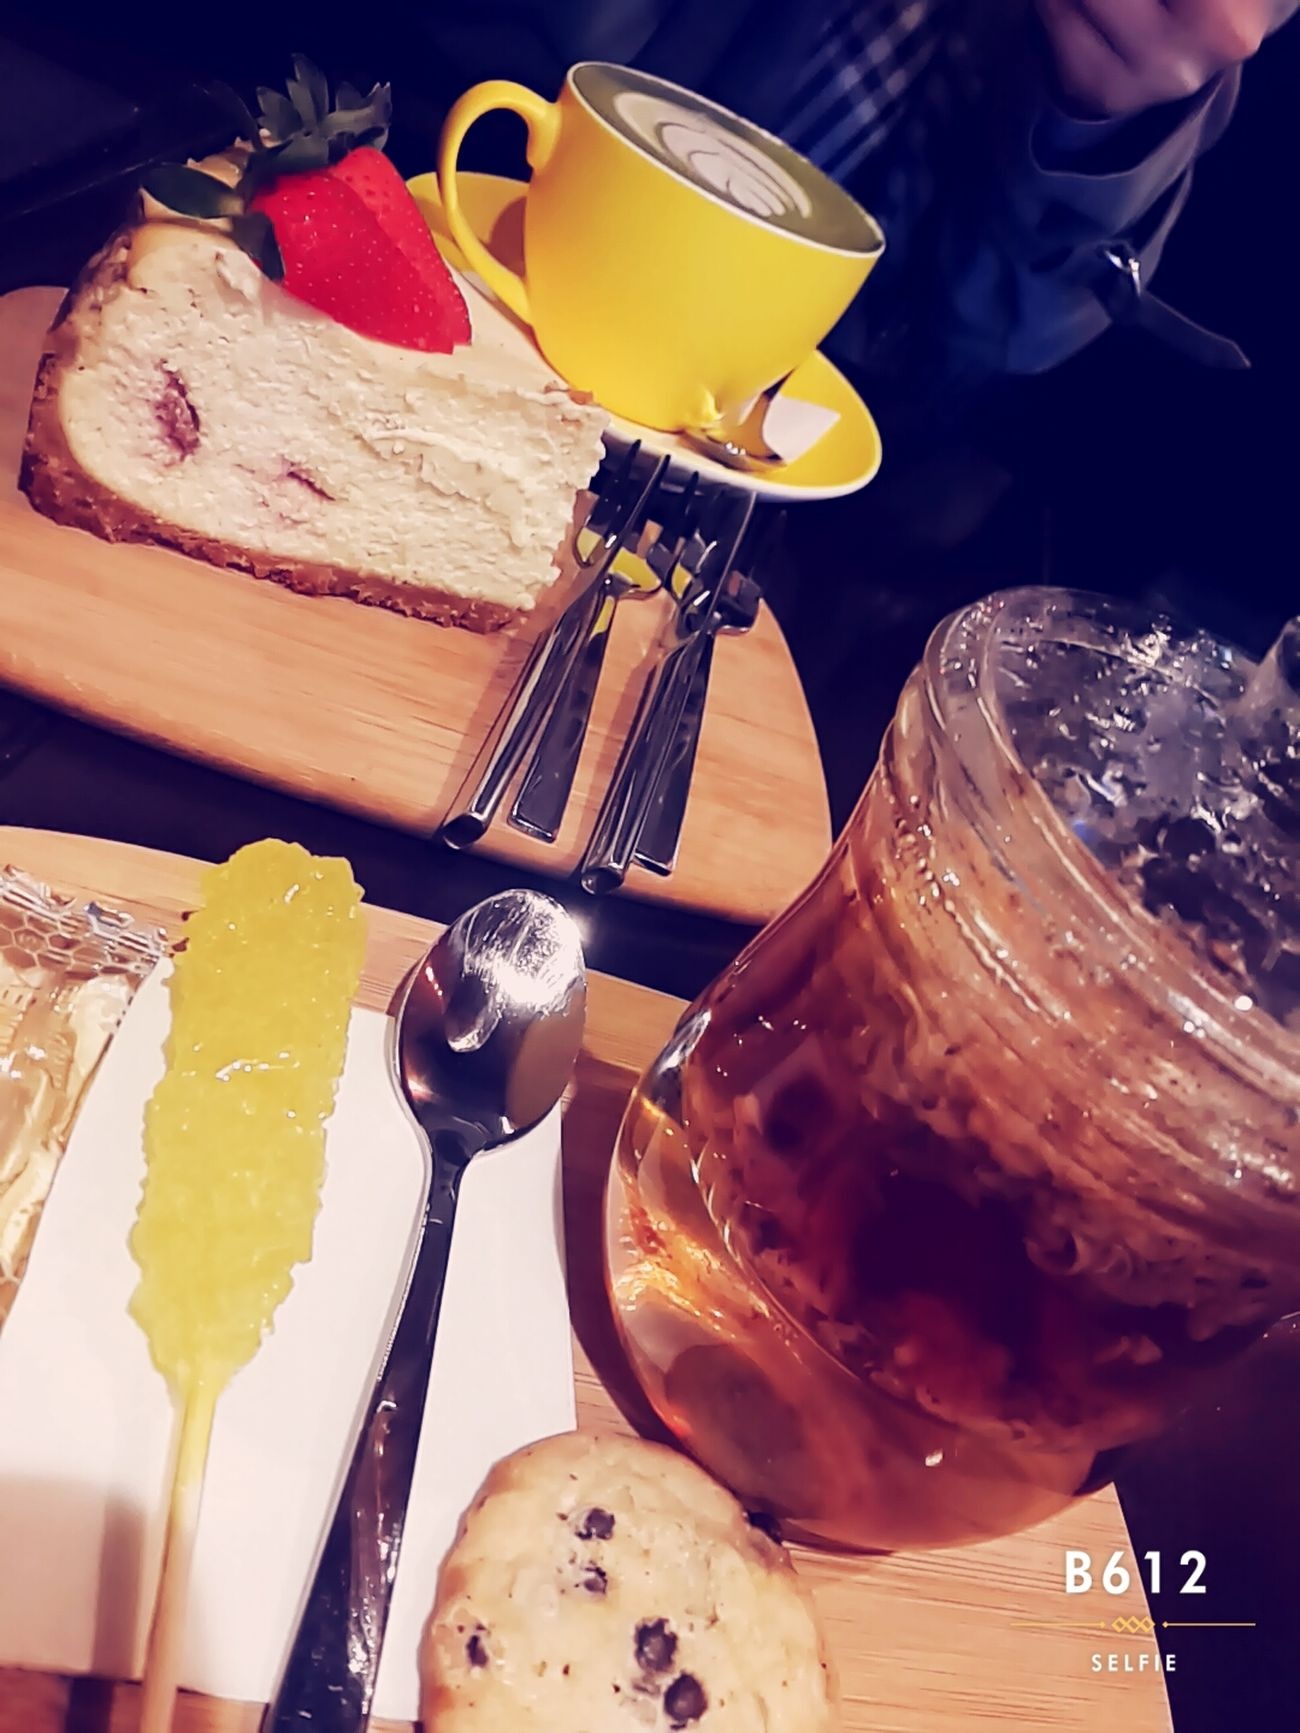 💙🌹 Hanging Out Taking Photos Enjoying Life Photography EyeEm Spring Is Coming  Nastaran Monocoffee Cheese Cake Tea Time Machalatte Popular Samsungphotography